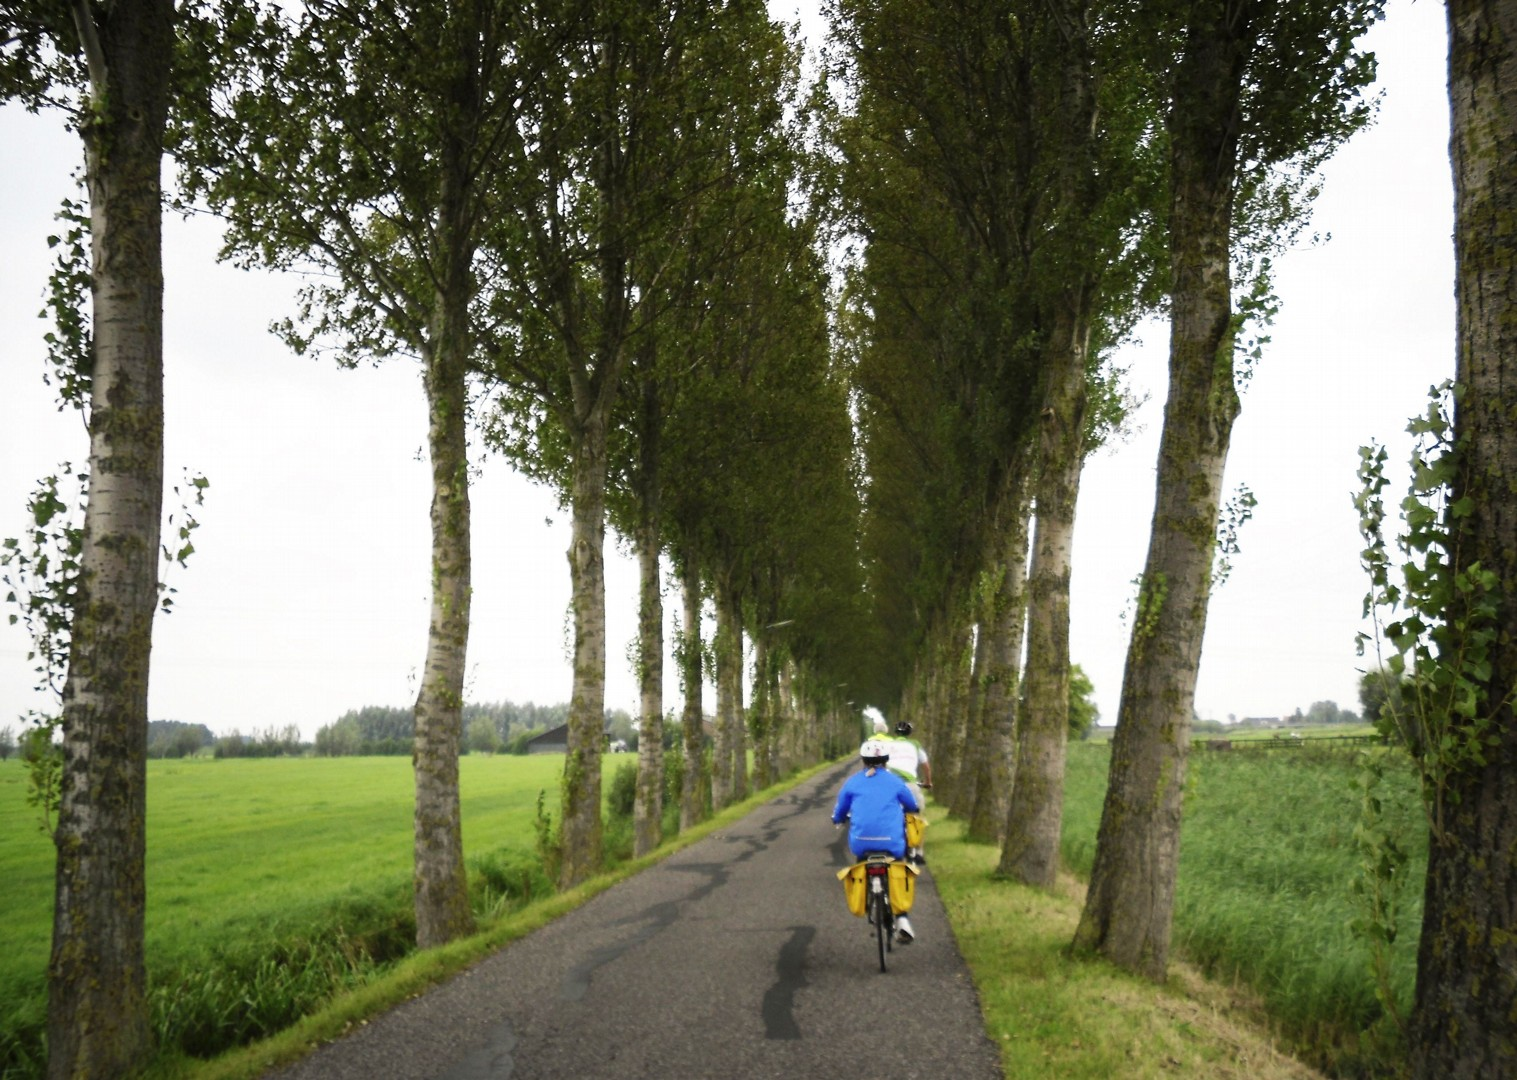 monnickendam-holland-windmills-and-golden-beaches-bike-and-barge-holiday.jpg - Holland - Windmills and Golden Beaches - Bike and Barge Holiday - Family Cycling